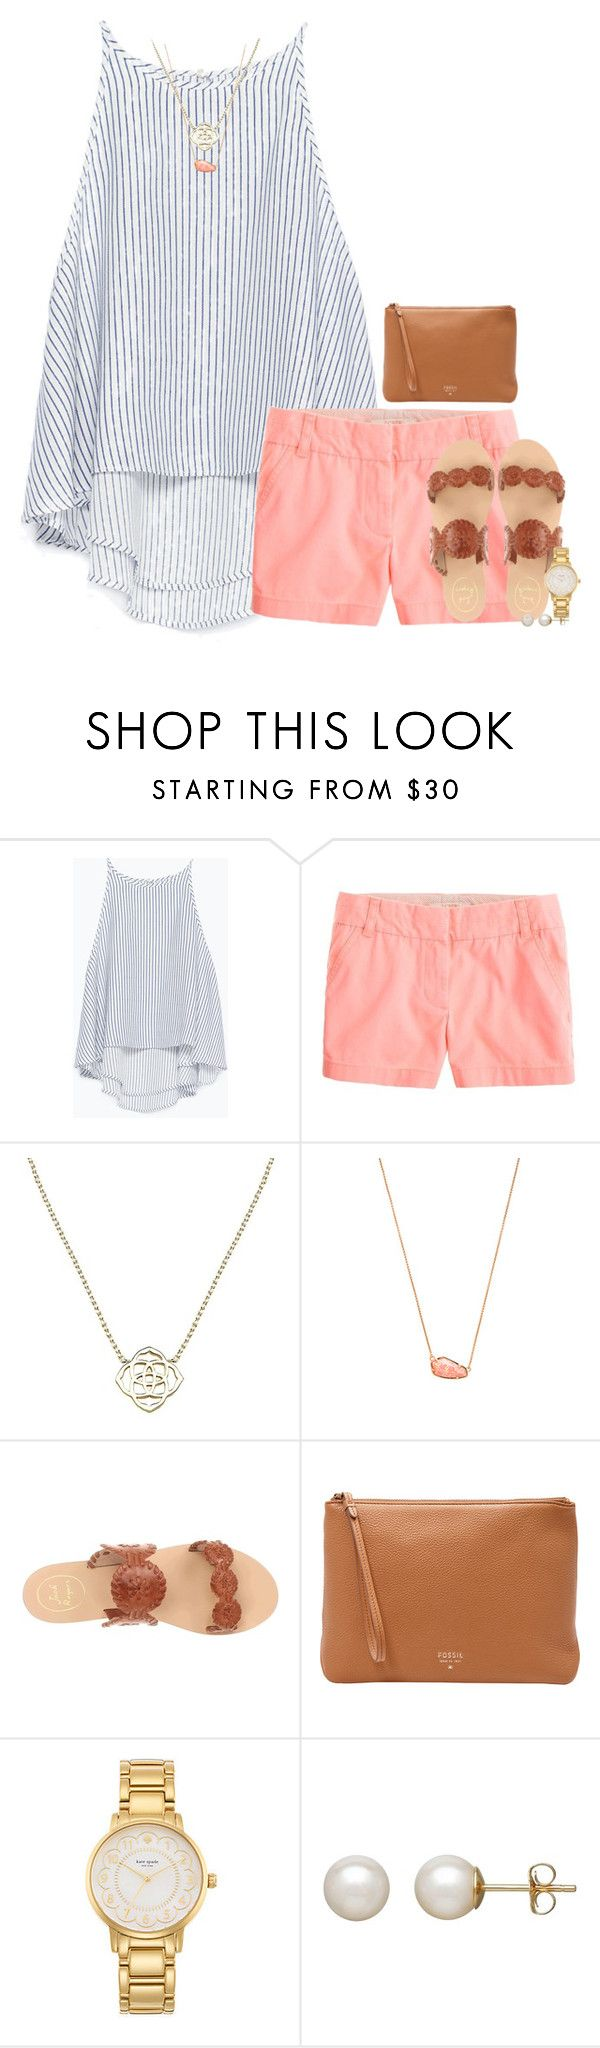 """She lost him, but found herself, and somehow that was everything."" by kate-elizabethh ❤ liked on Polyvore featuring Zara, J.Crew, Kendra Scott, Jack Rogers, FOSSIL, Kate Spade, Honora, women's clothing, women and female"